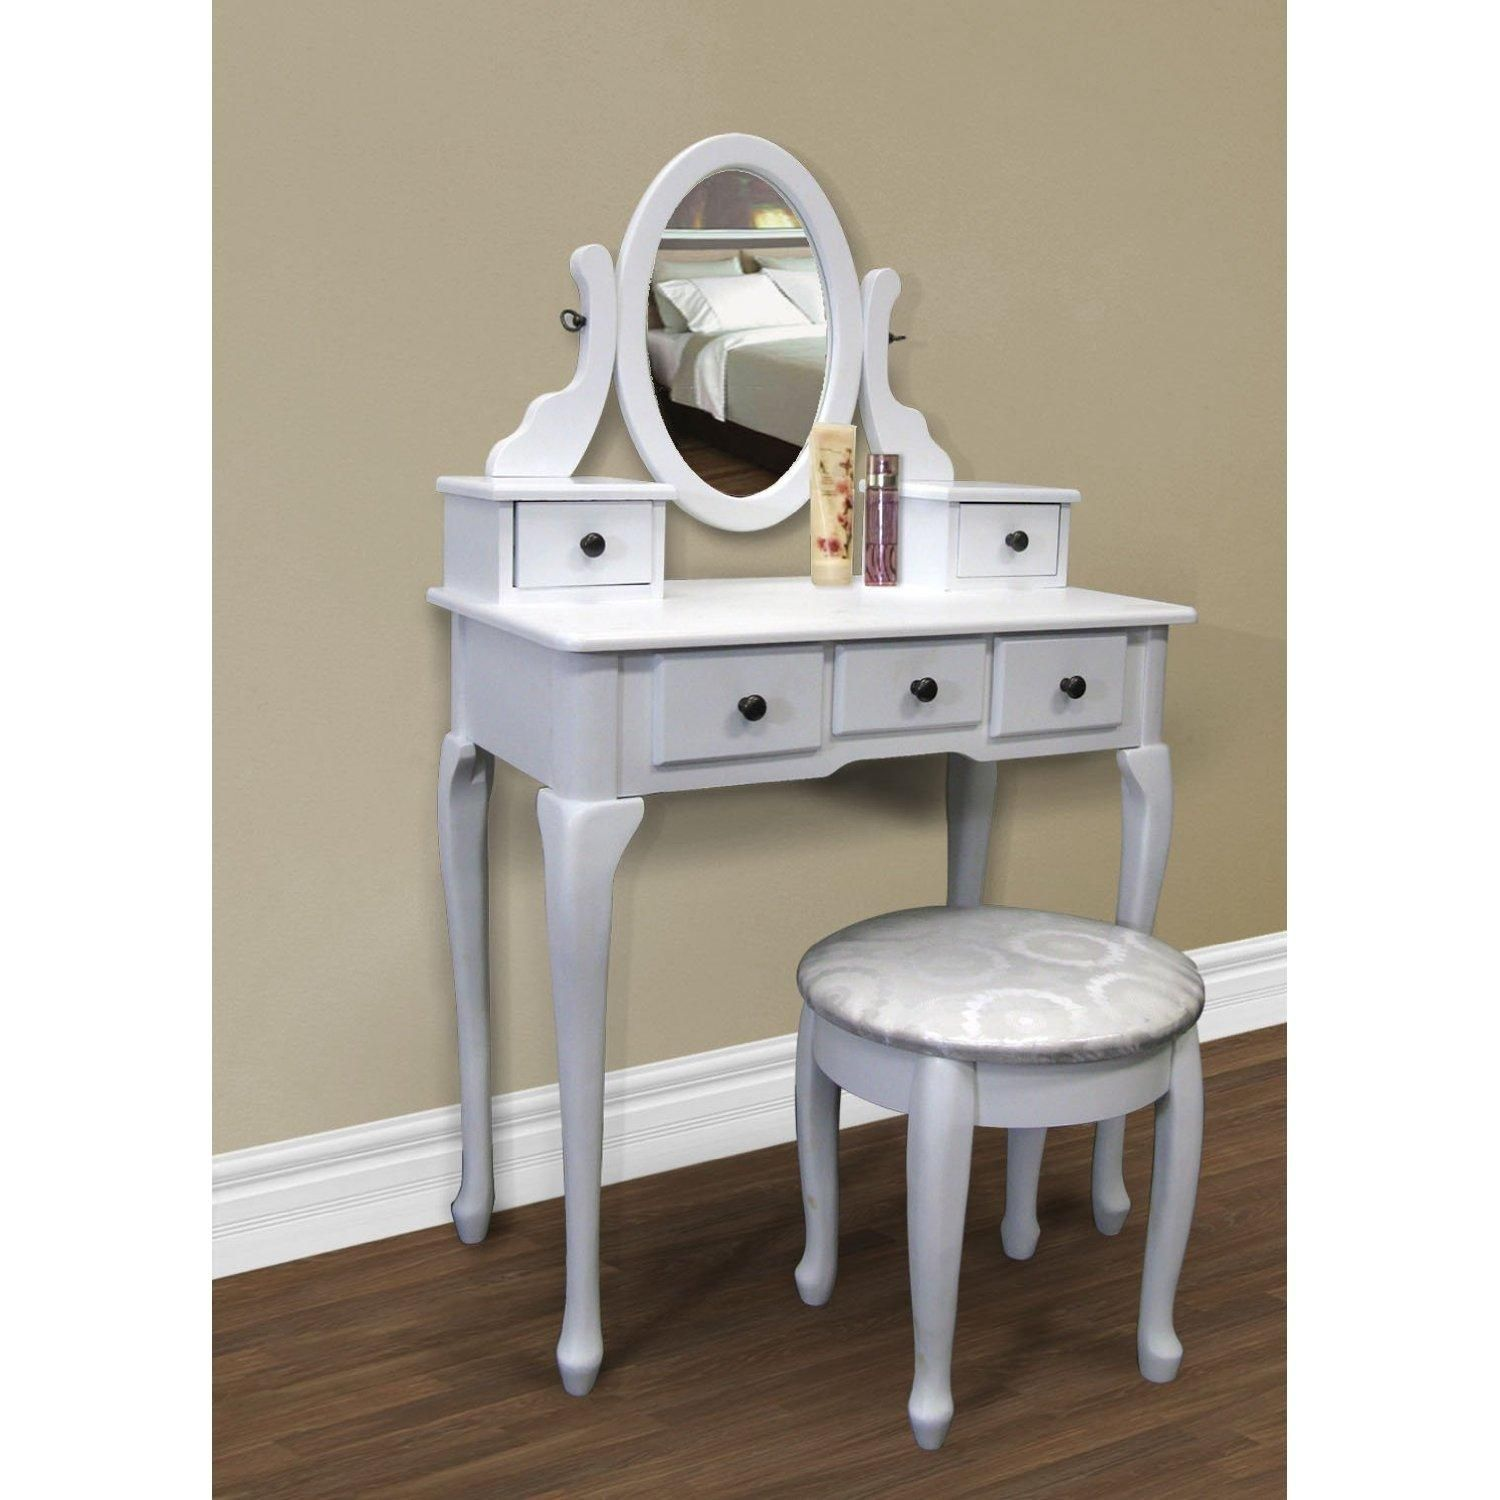 Small Vanity Desk With Lots Of Storage Space. Home Sweet